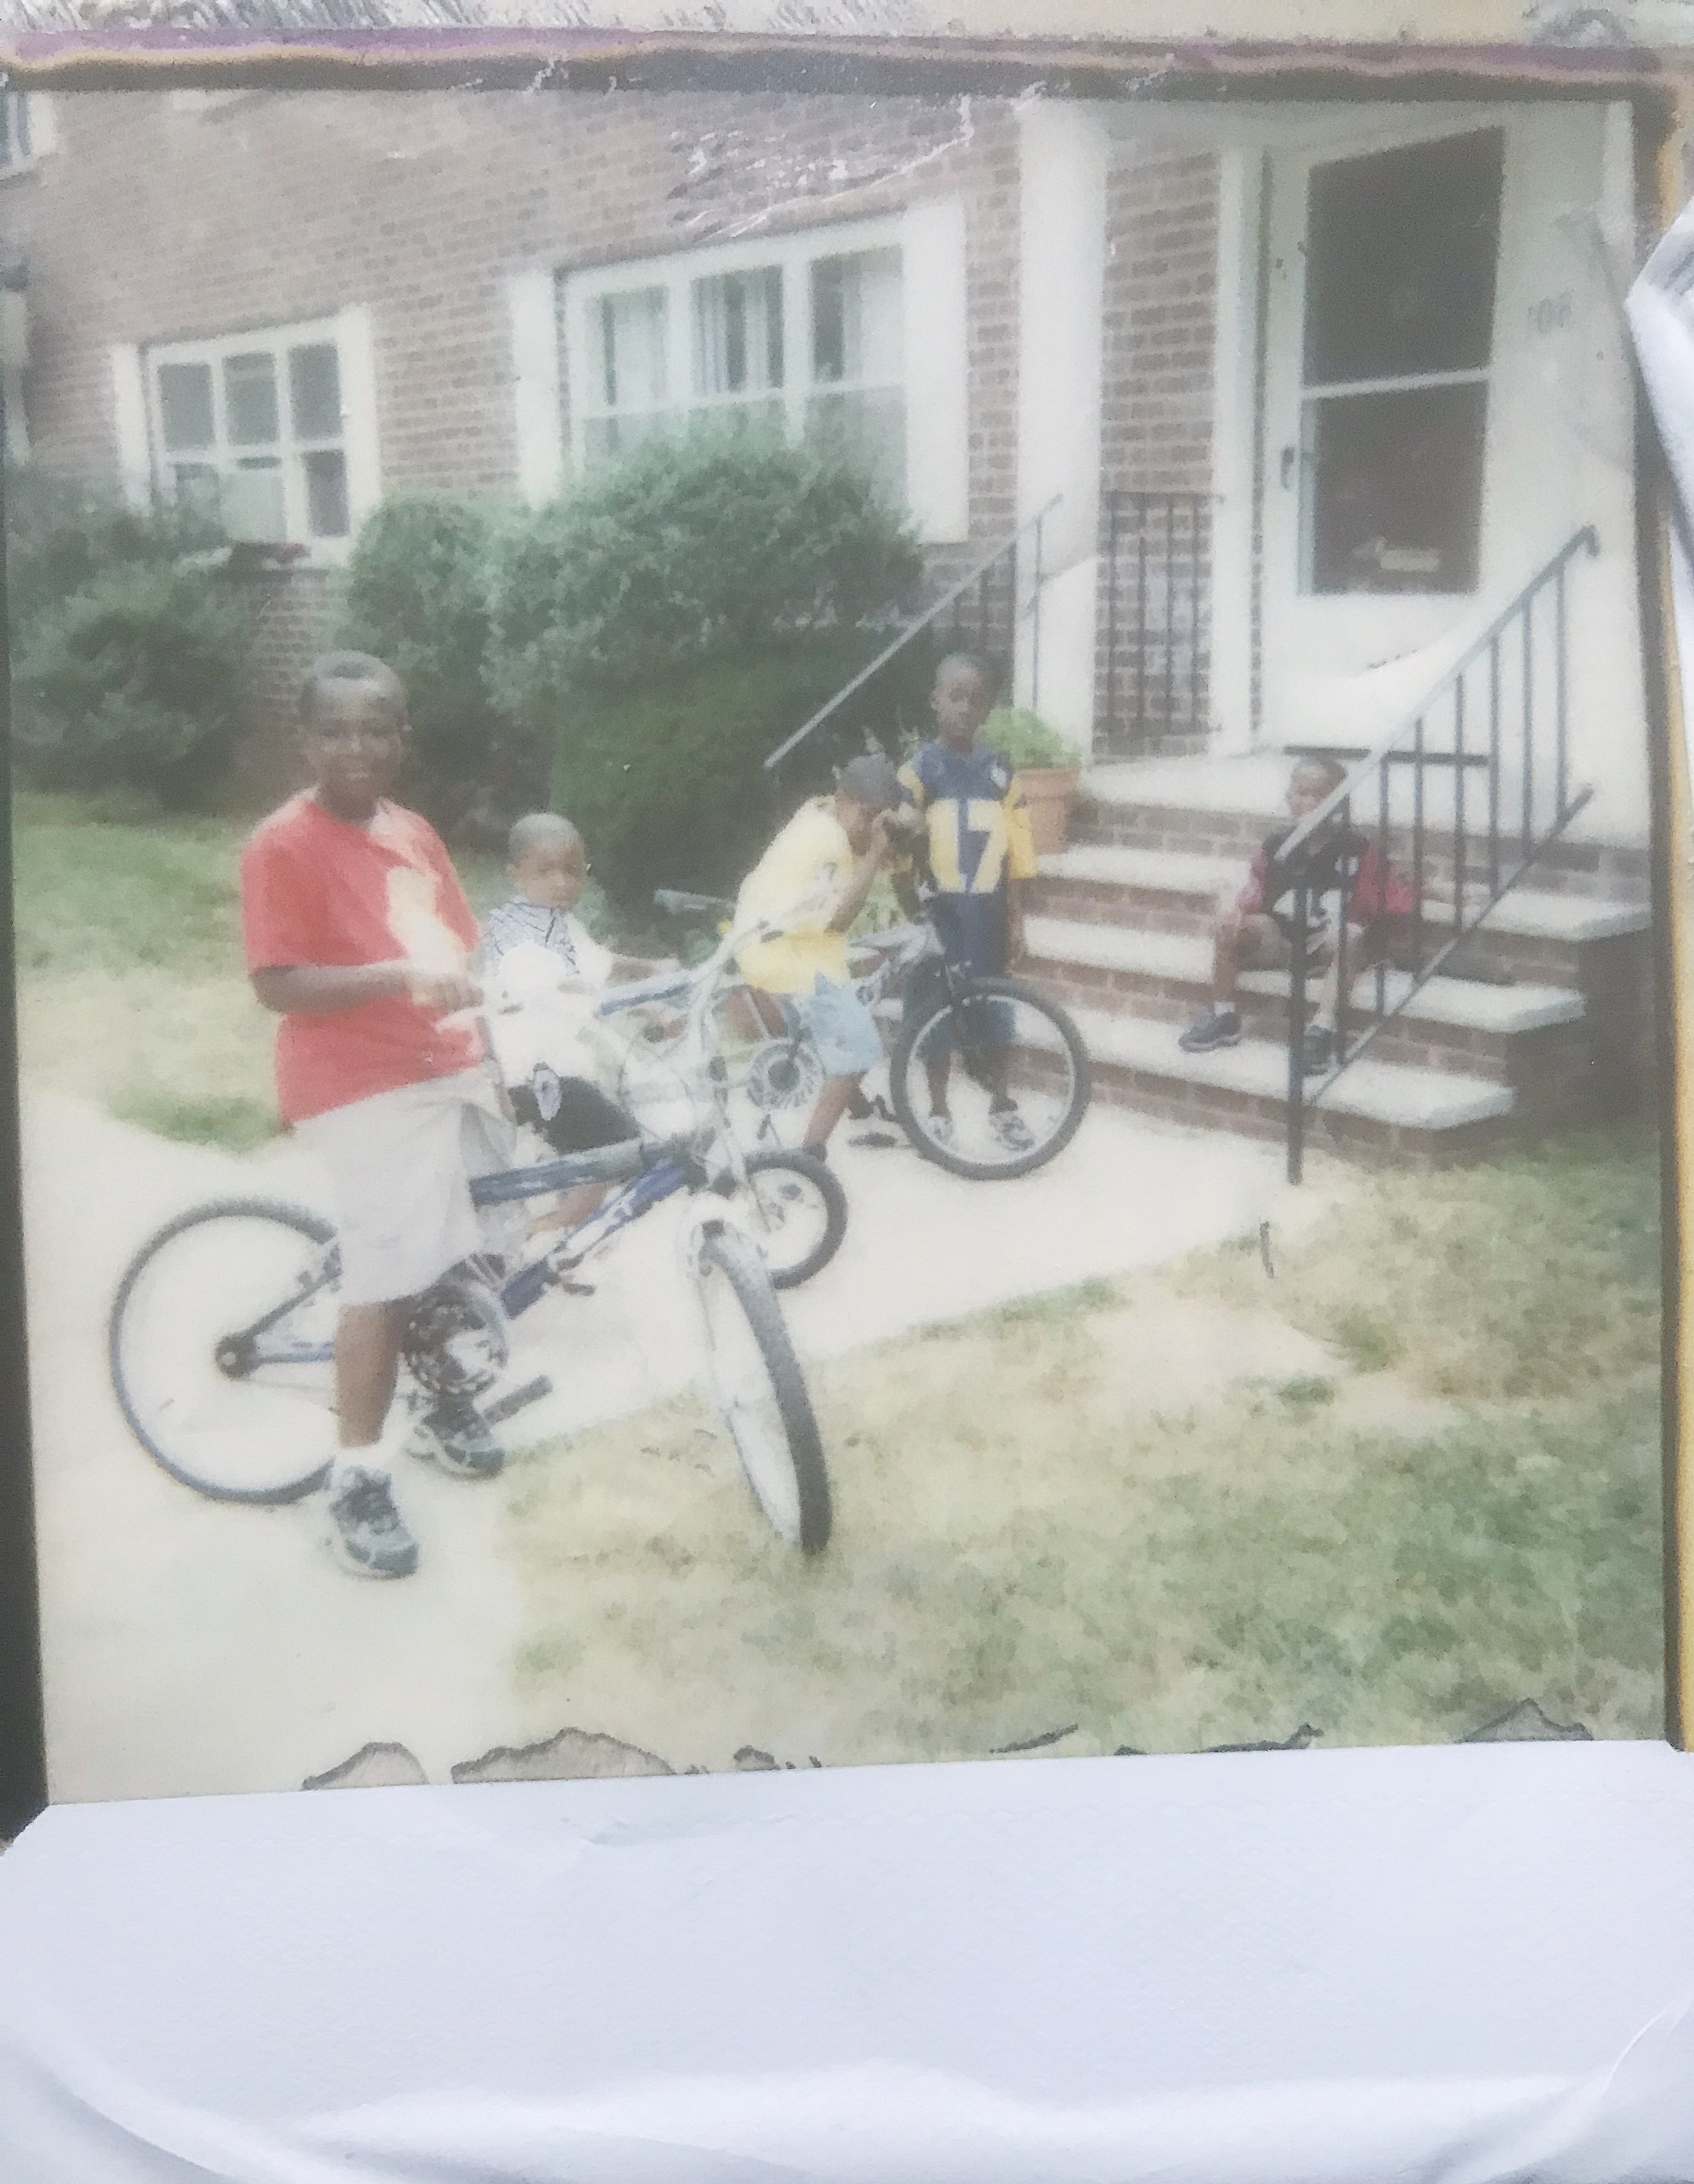 Me & The Homies (Free Esco. Rest In Peace Deion) — Philips Road. The Grove. 2001.